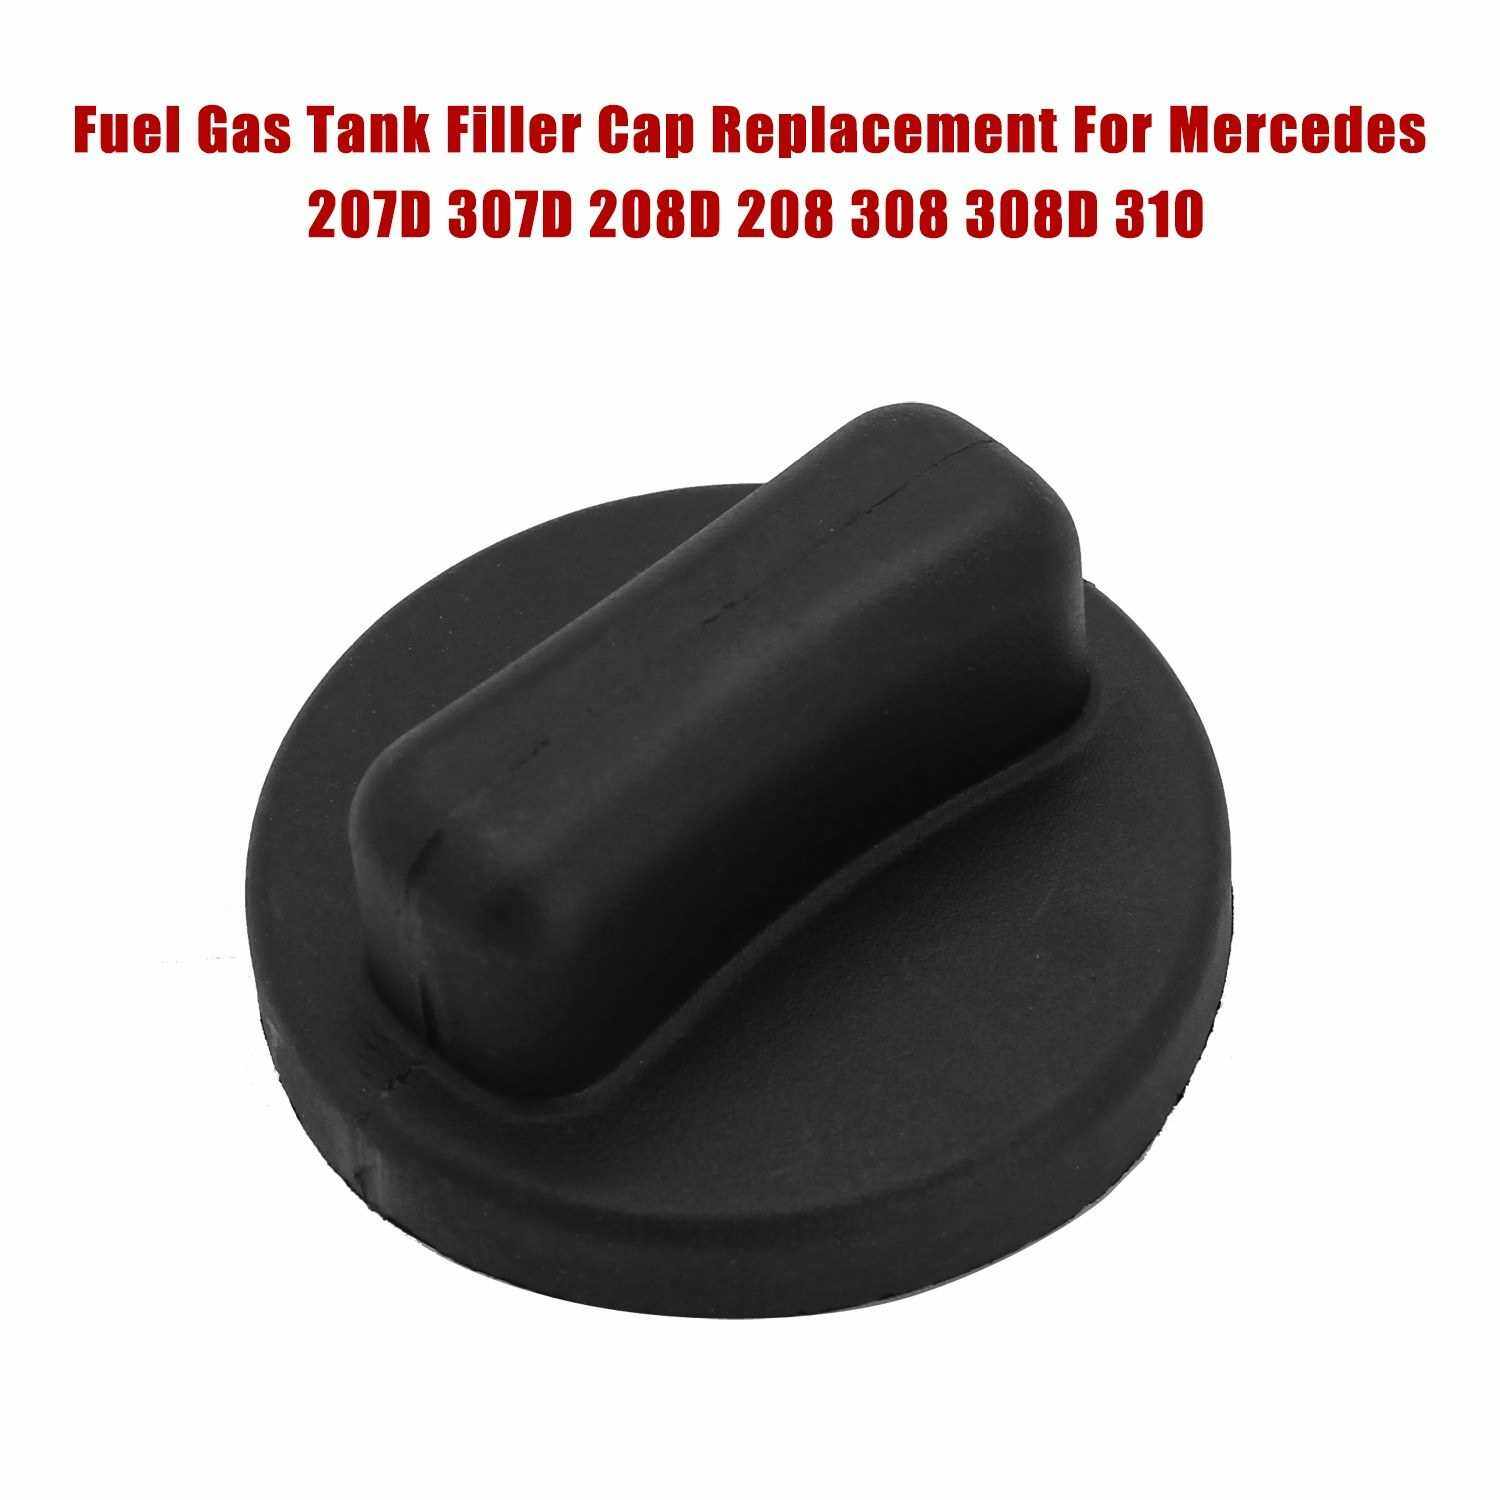 Best Selling Fuel Gas Tank Filler Cap Replacement For Mercedes 207D 307D 208D 208 308 308D 310 (Standard)